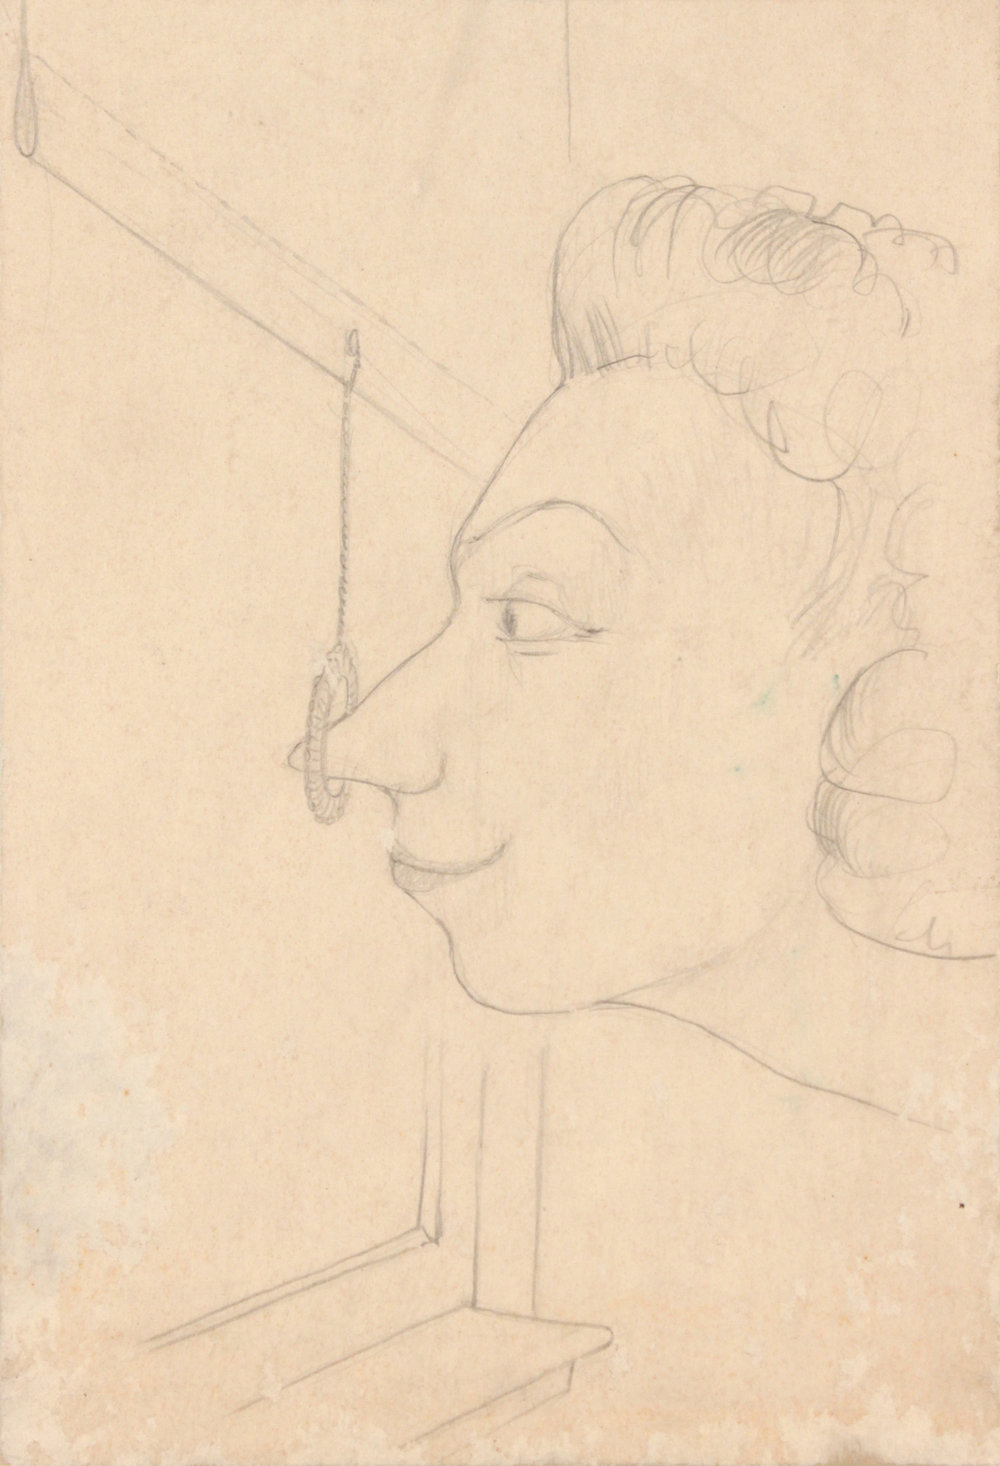 2. 1947-48 c, Image 36.11_The Artist's Aunt, Graphite on Board, 12x9.25, PPS 1425.JPG